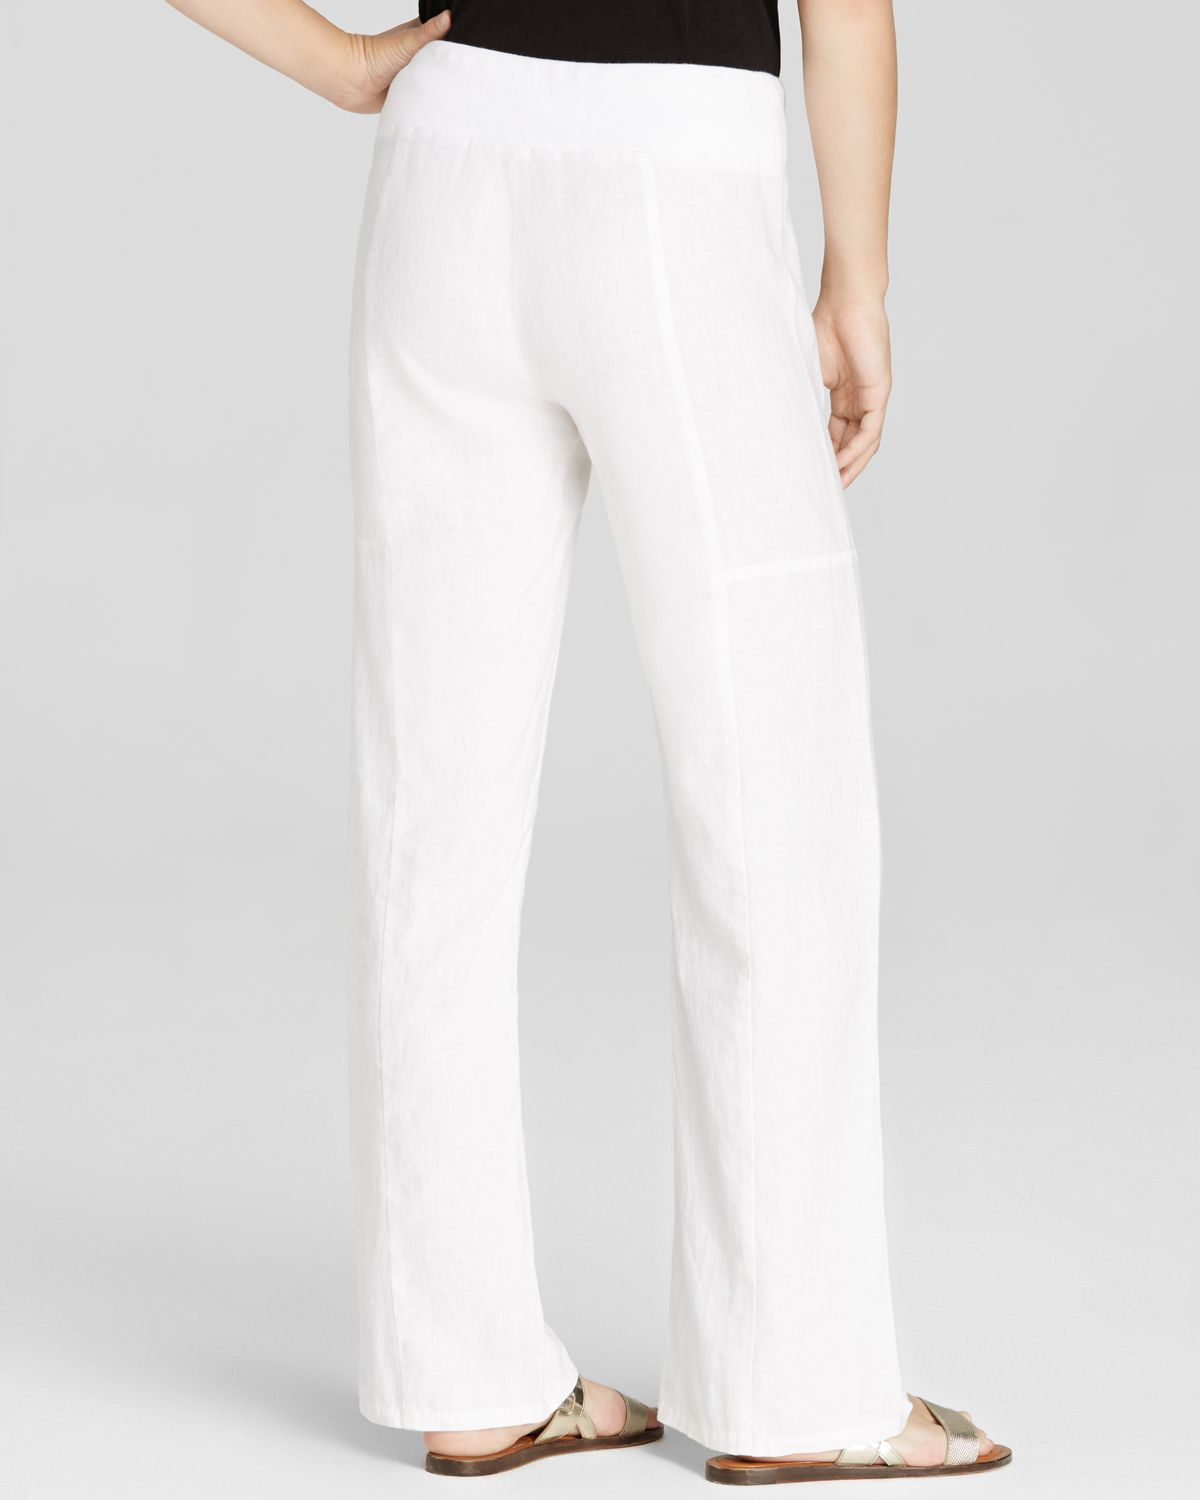 Women linen wide leg pants white - results from brands Liz Claiborne, INC, Eileen Fisher, products like Tommy Bahama Two Palms Easy Pants (White) Women's Casual Pants, Charter Club Linen Drawstring-Waist Pants, Created for Macy's - White XXL, White Drawstring-Waist Linen Wide-Leg Pants - Women & Plus, Women's Pants.